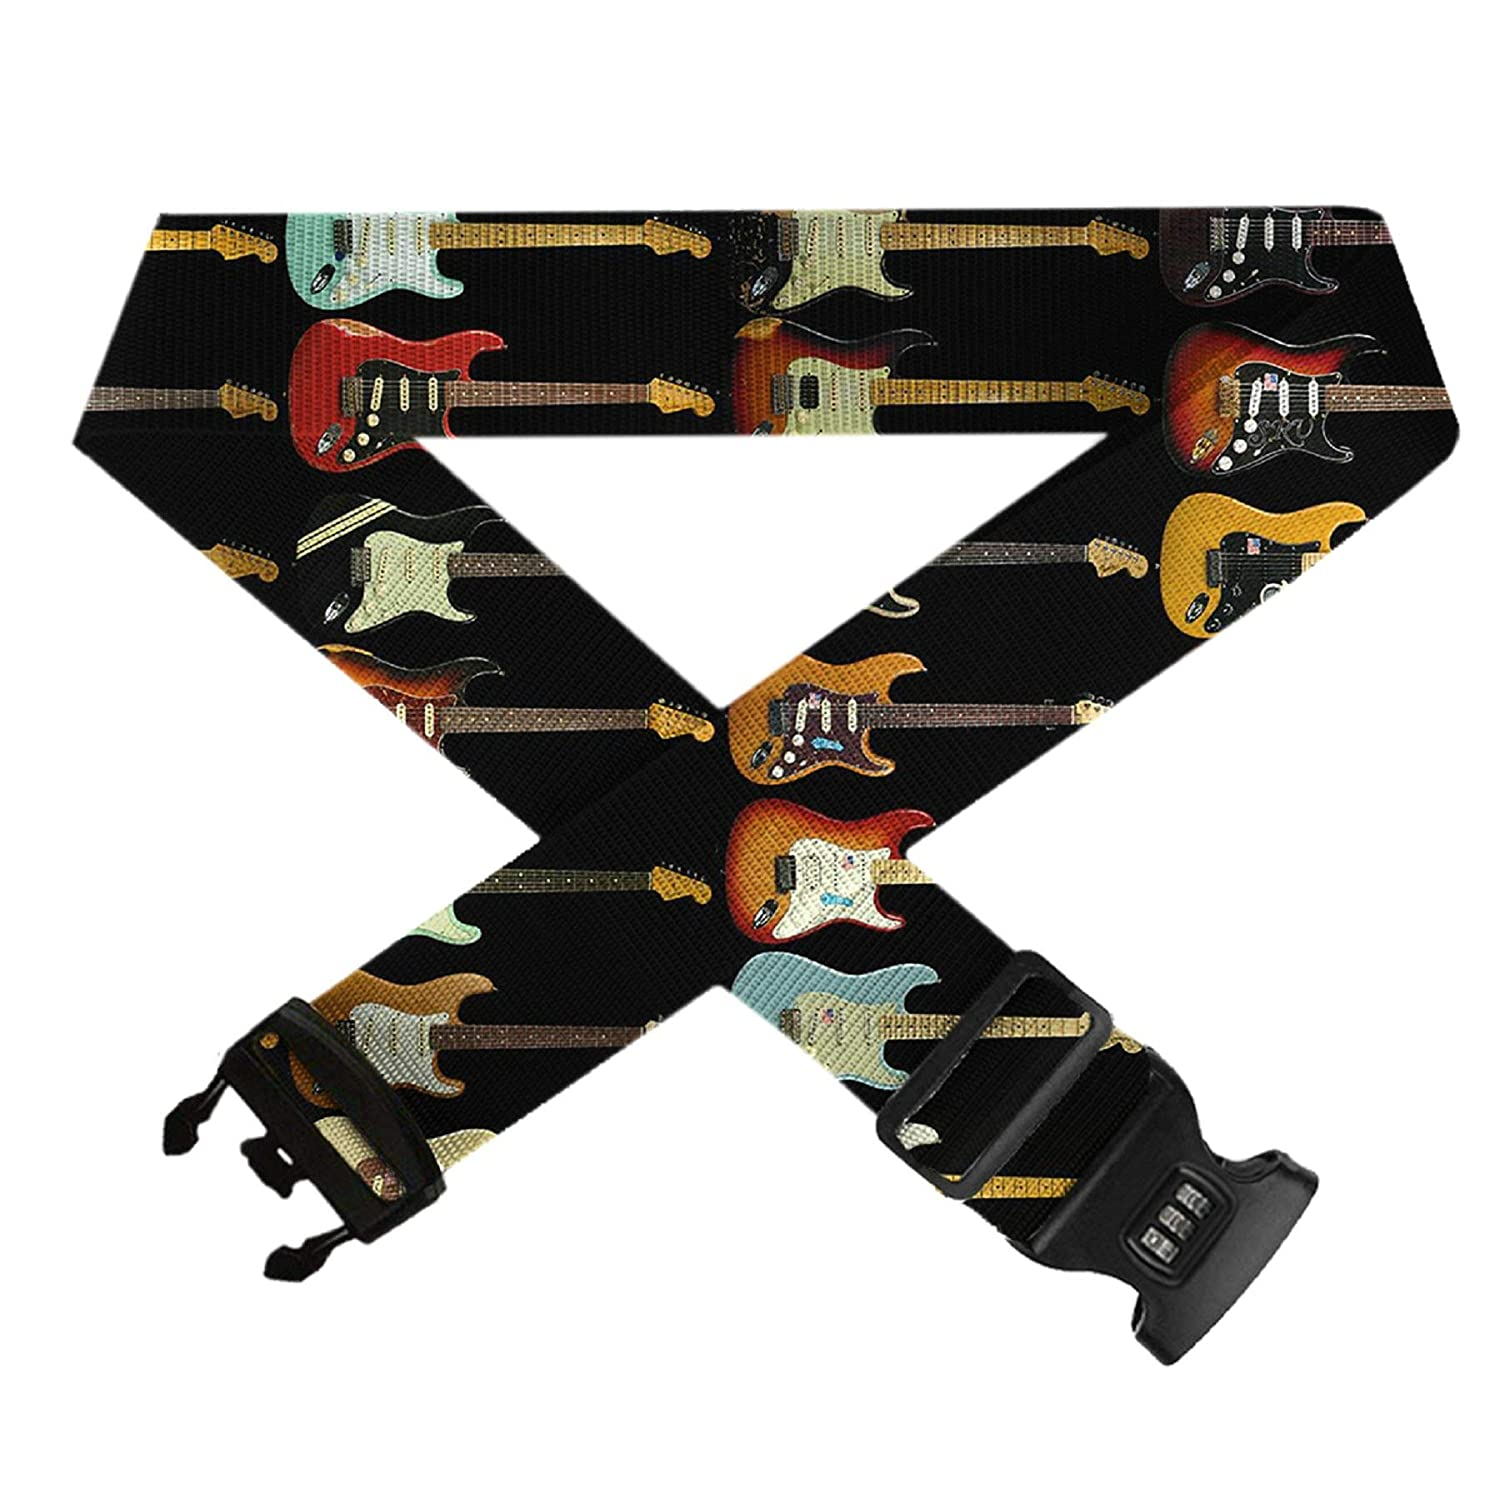 Electric Guitar TSA Approved Lock Heavy Duty Suitcase Straps Travel Belts Accessories 1-Pc GLORY ART Adjustable Luggage Strap